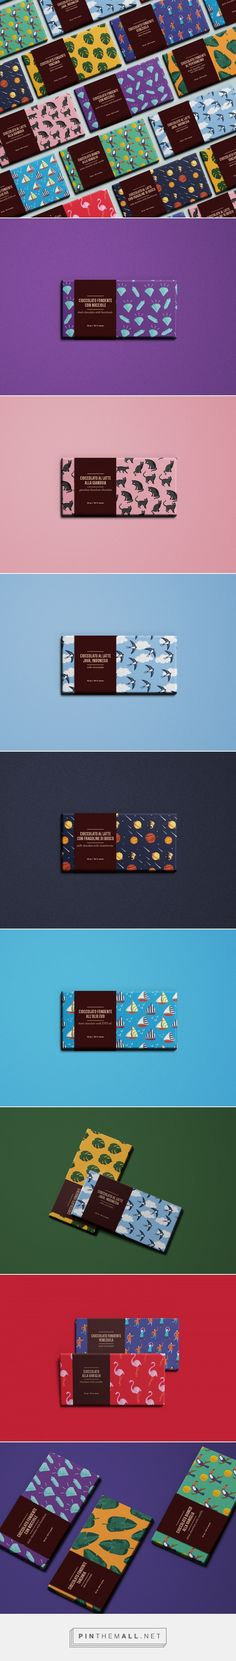 Chocolate Packaging design by Antitetico Brand Visionares Group, Claudia Alexandrino